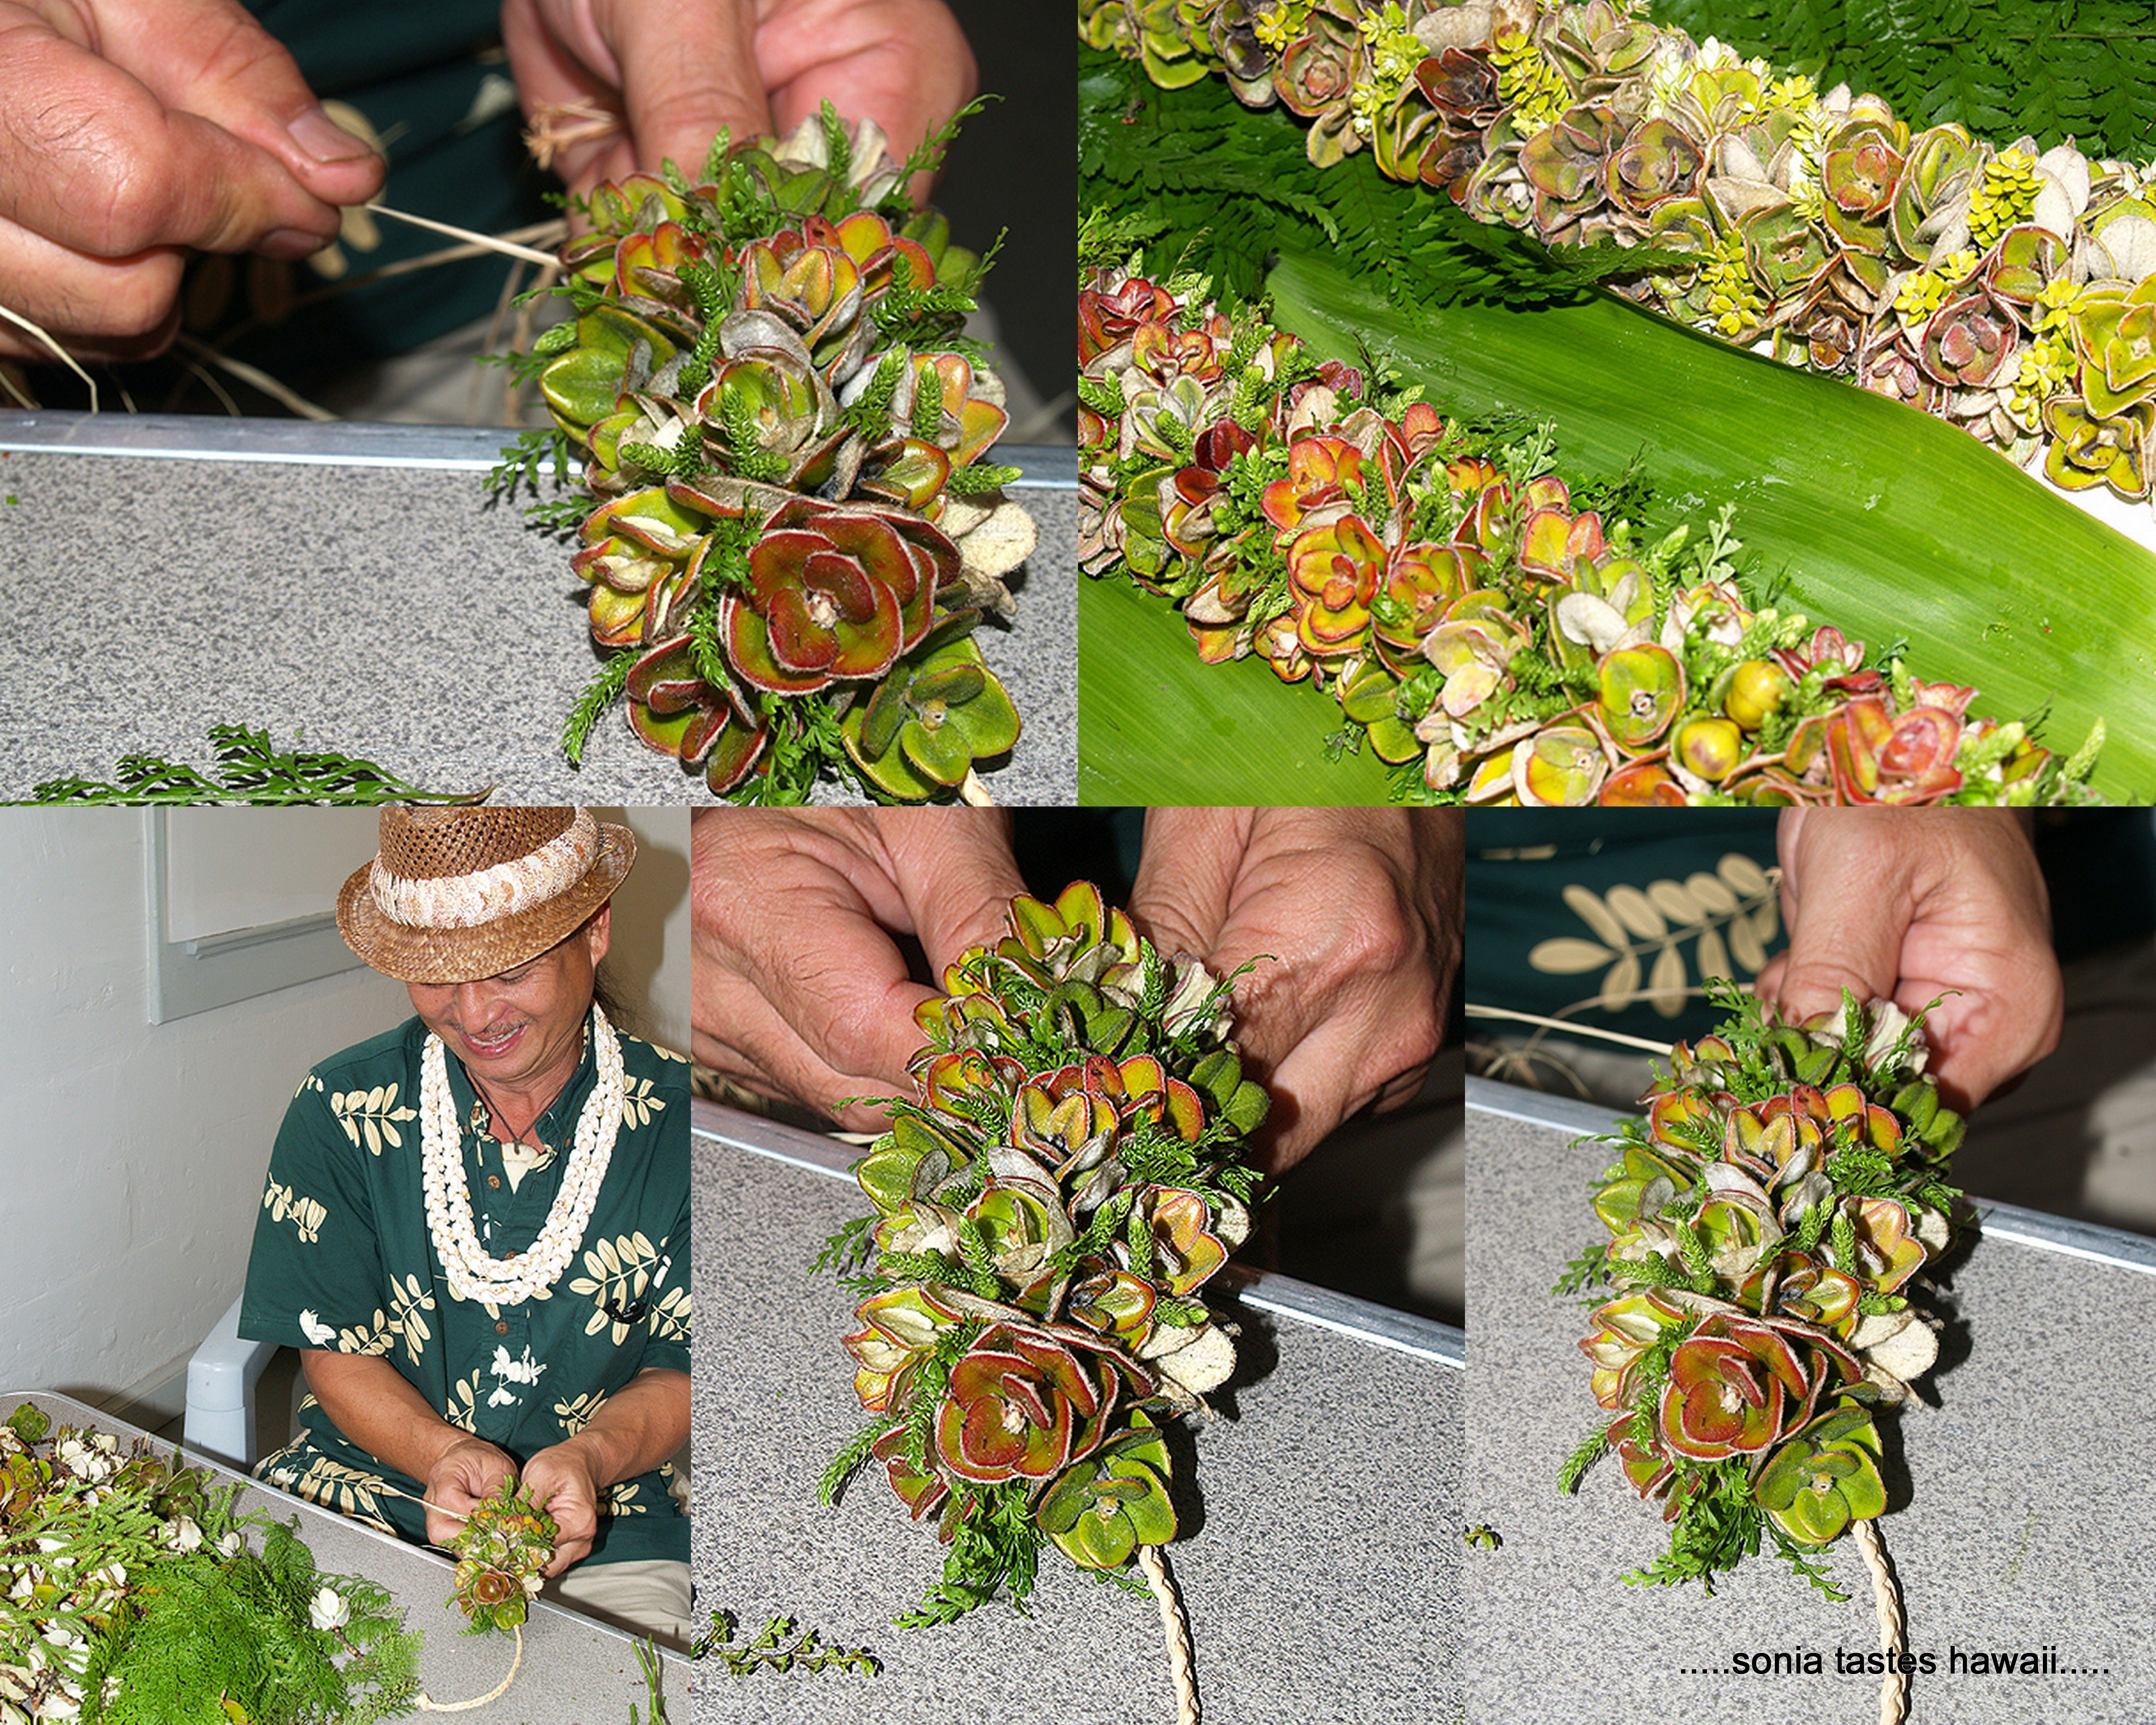 A beautiful lei made with liko lehua made by randy lee na pua a beautiful lei made with liko lehua made by randy lee izmirmasajfo